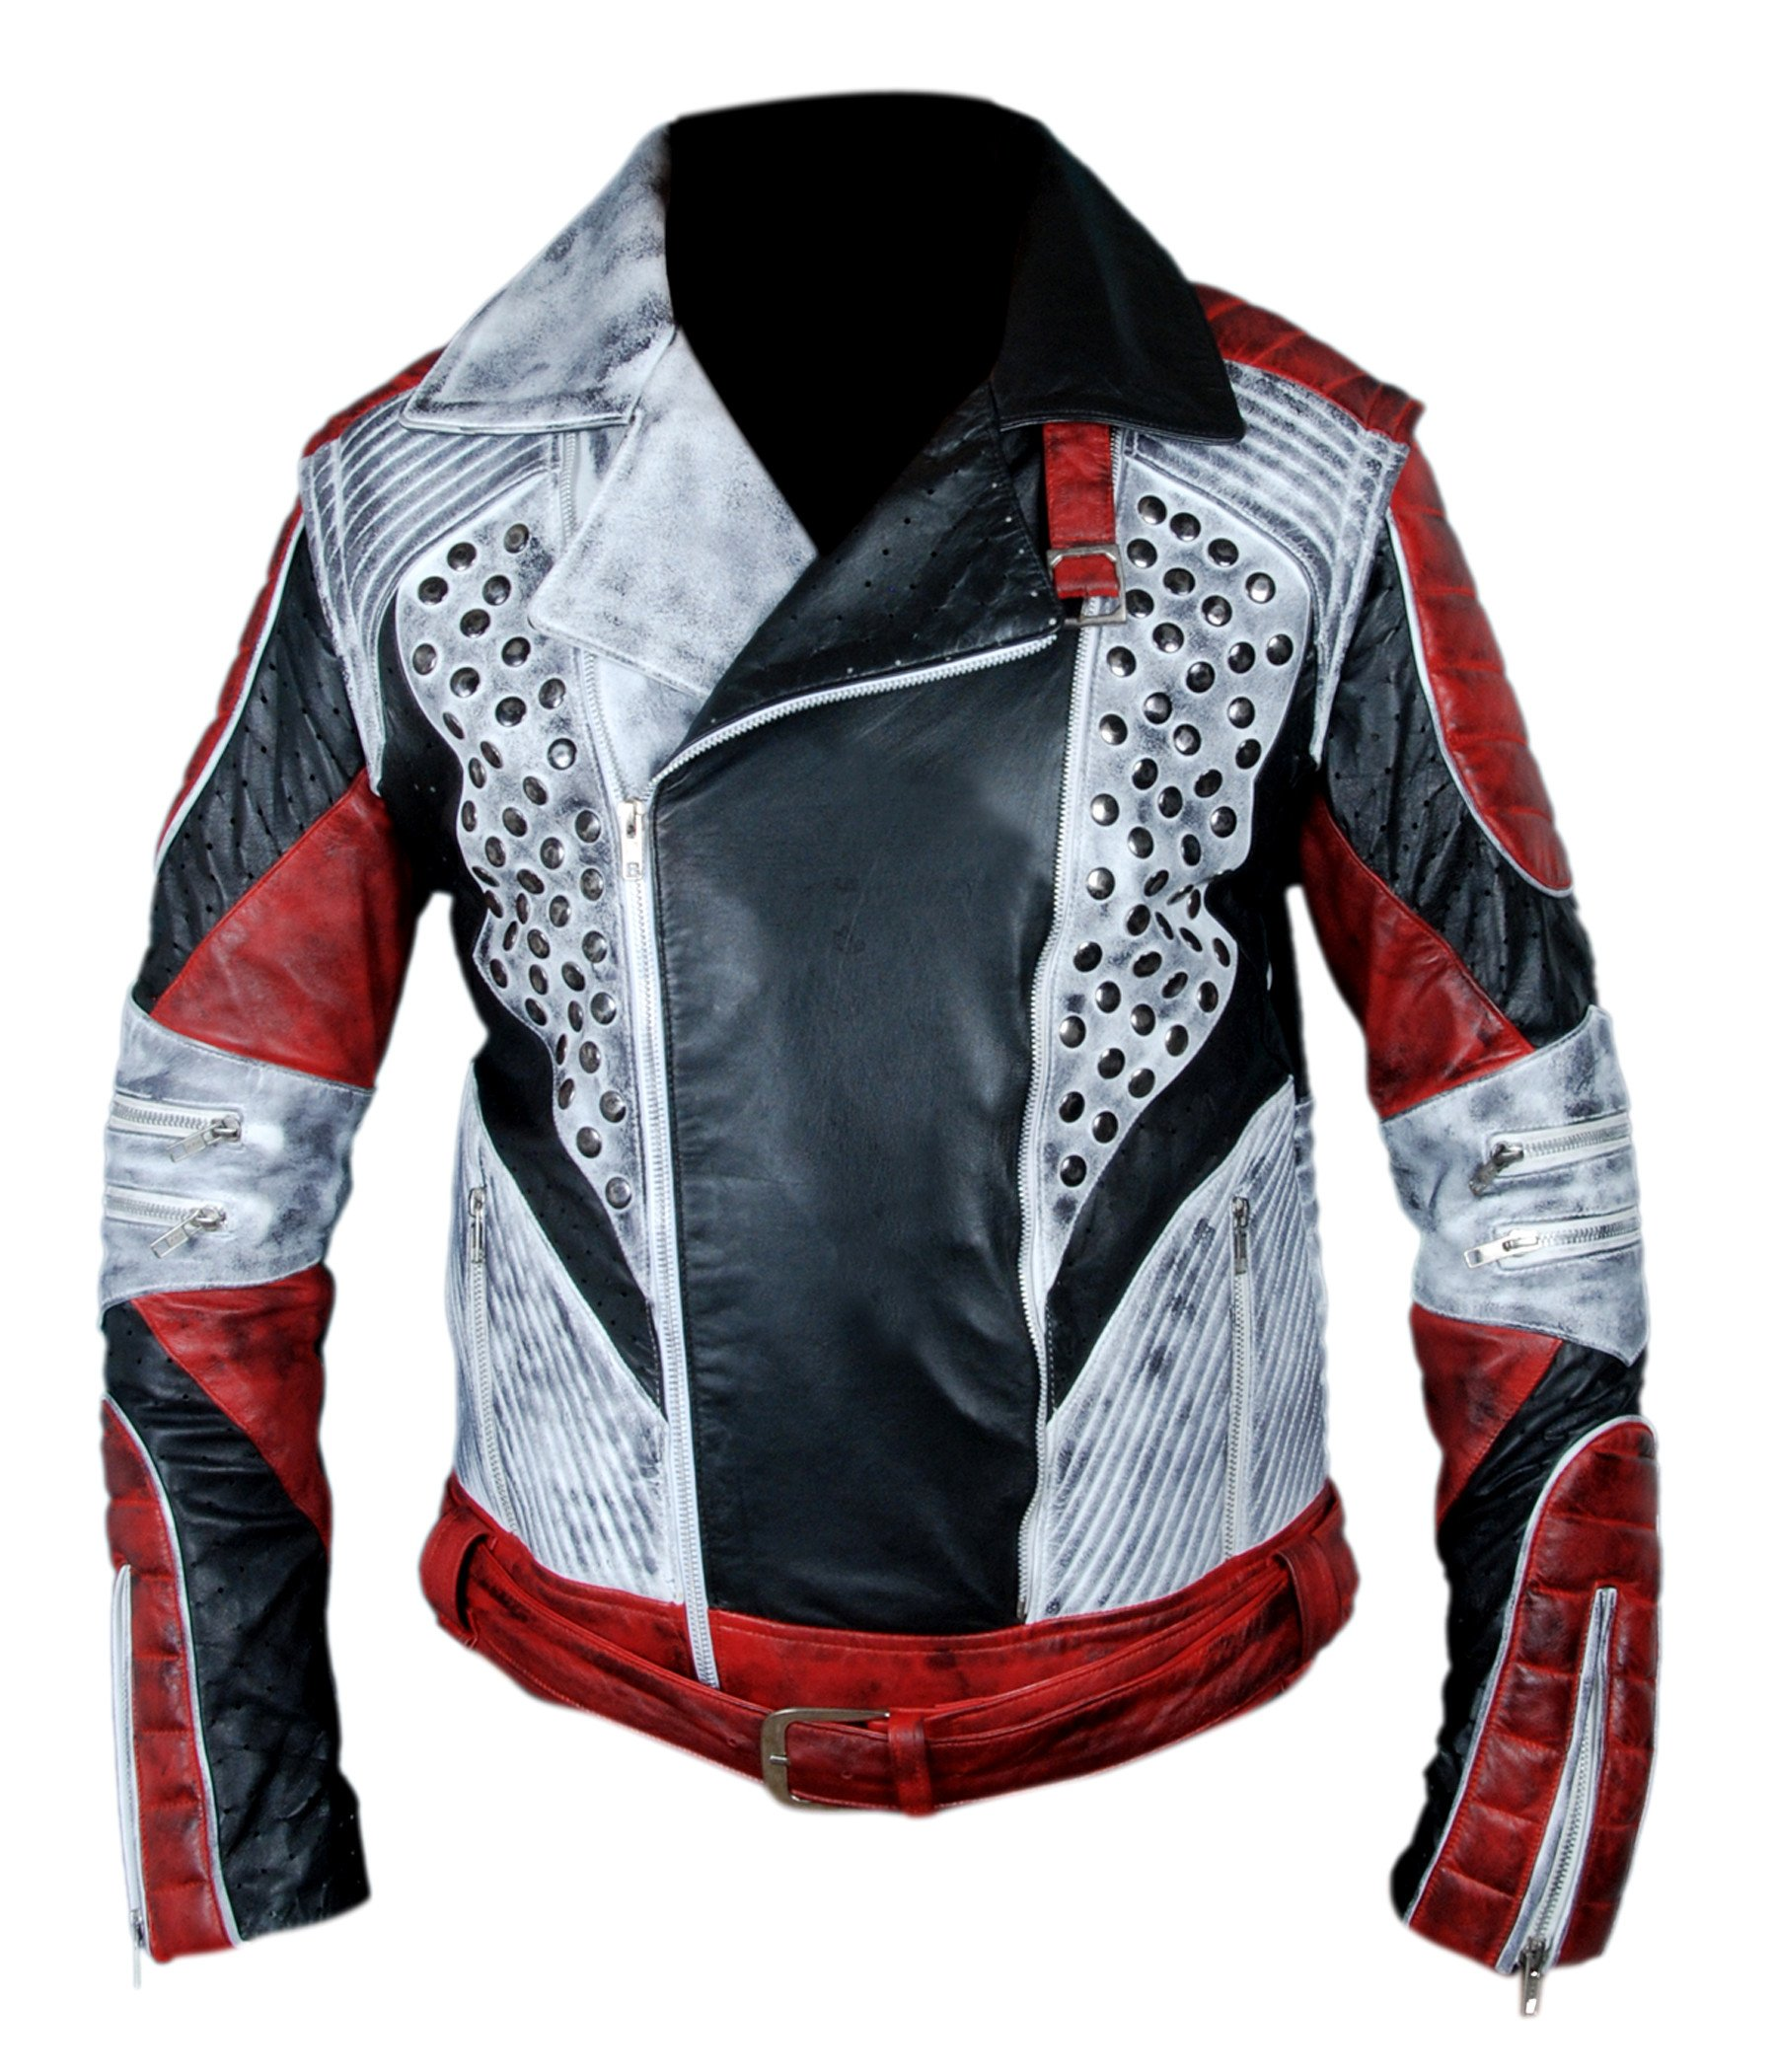 F&H Boy's Carlos Cameron Boyce Descendants 2 Jacket with Removable Arms S Multi by Flesh & Hide